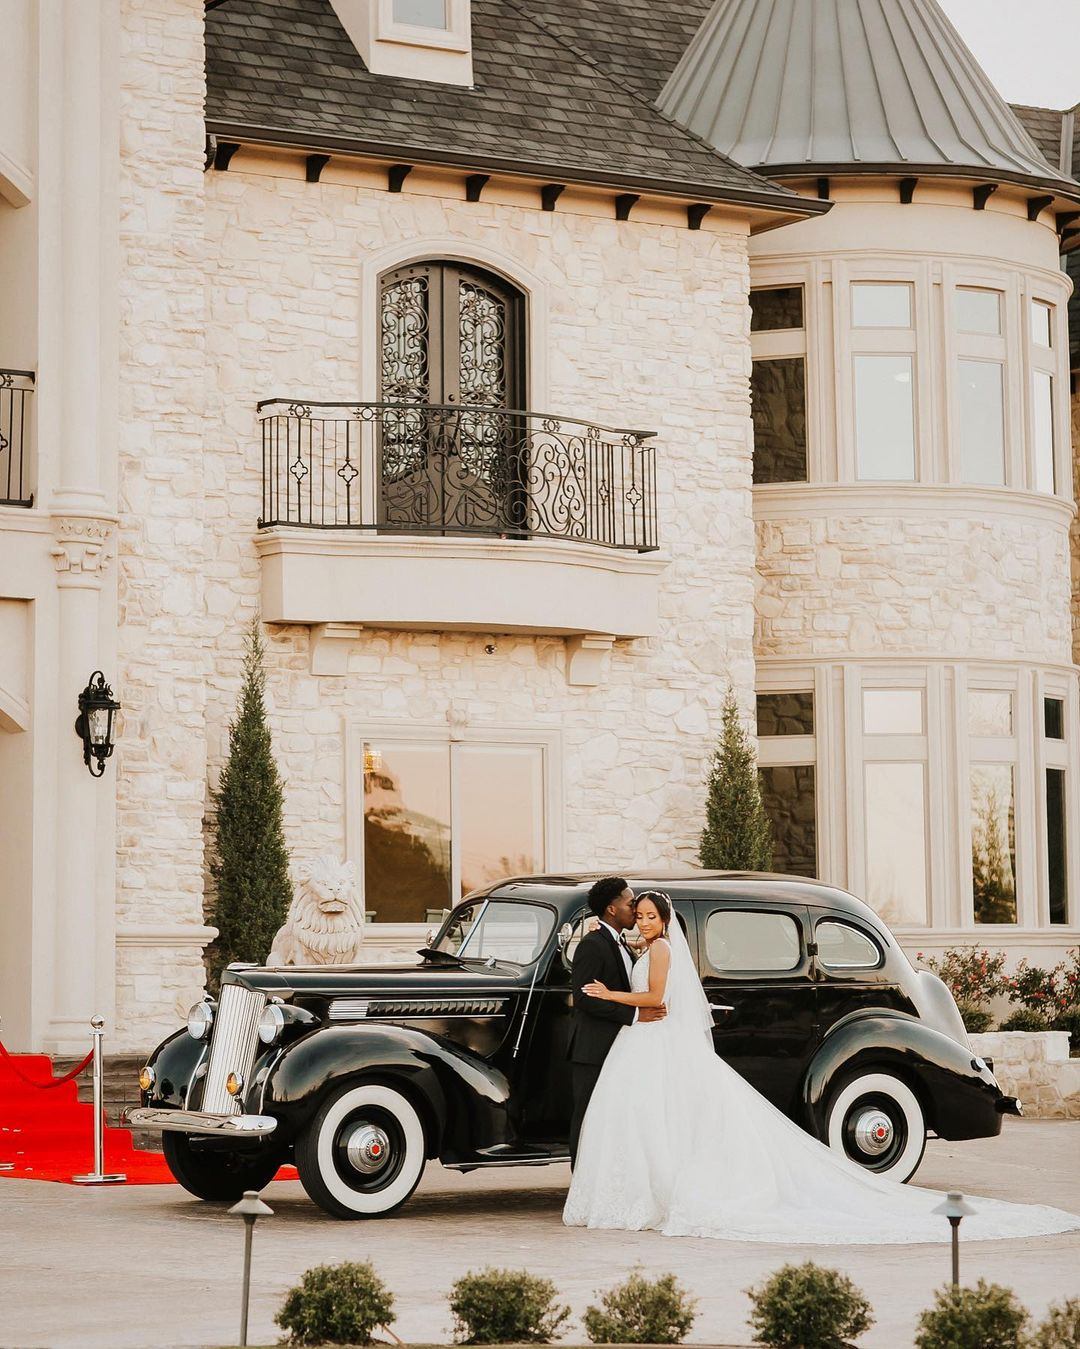 Bride and groom posing in front of a black car in front of a castle-themed building